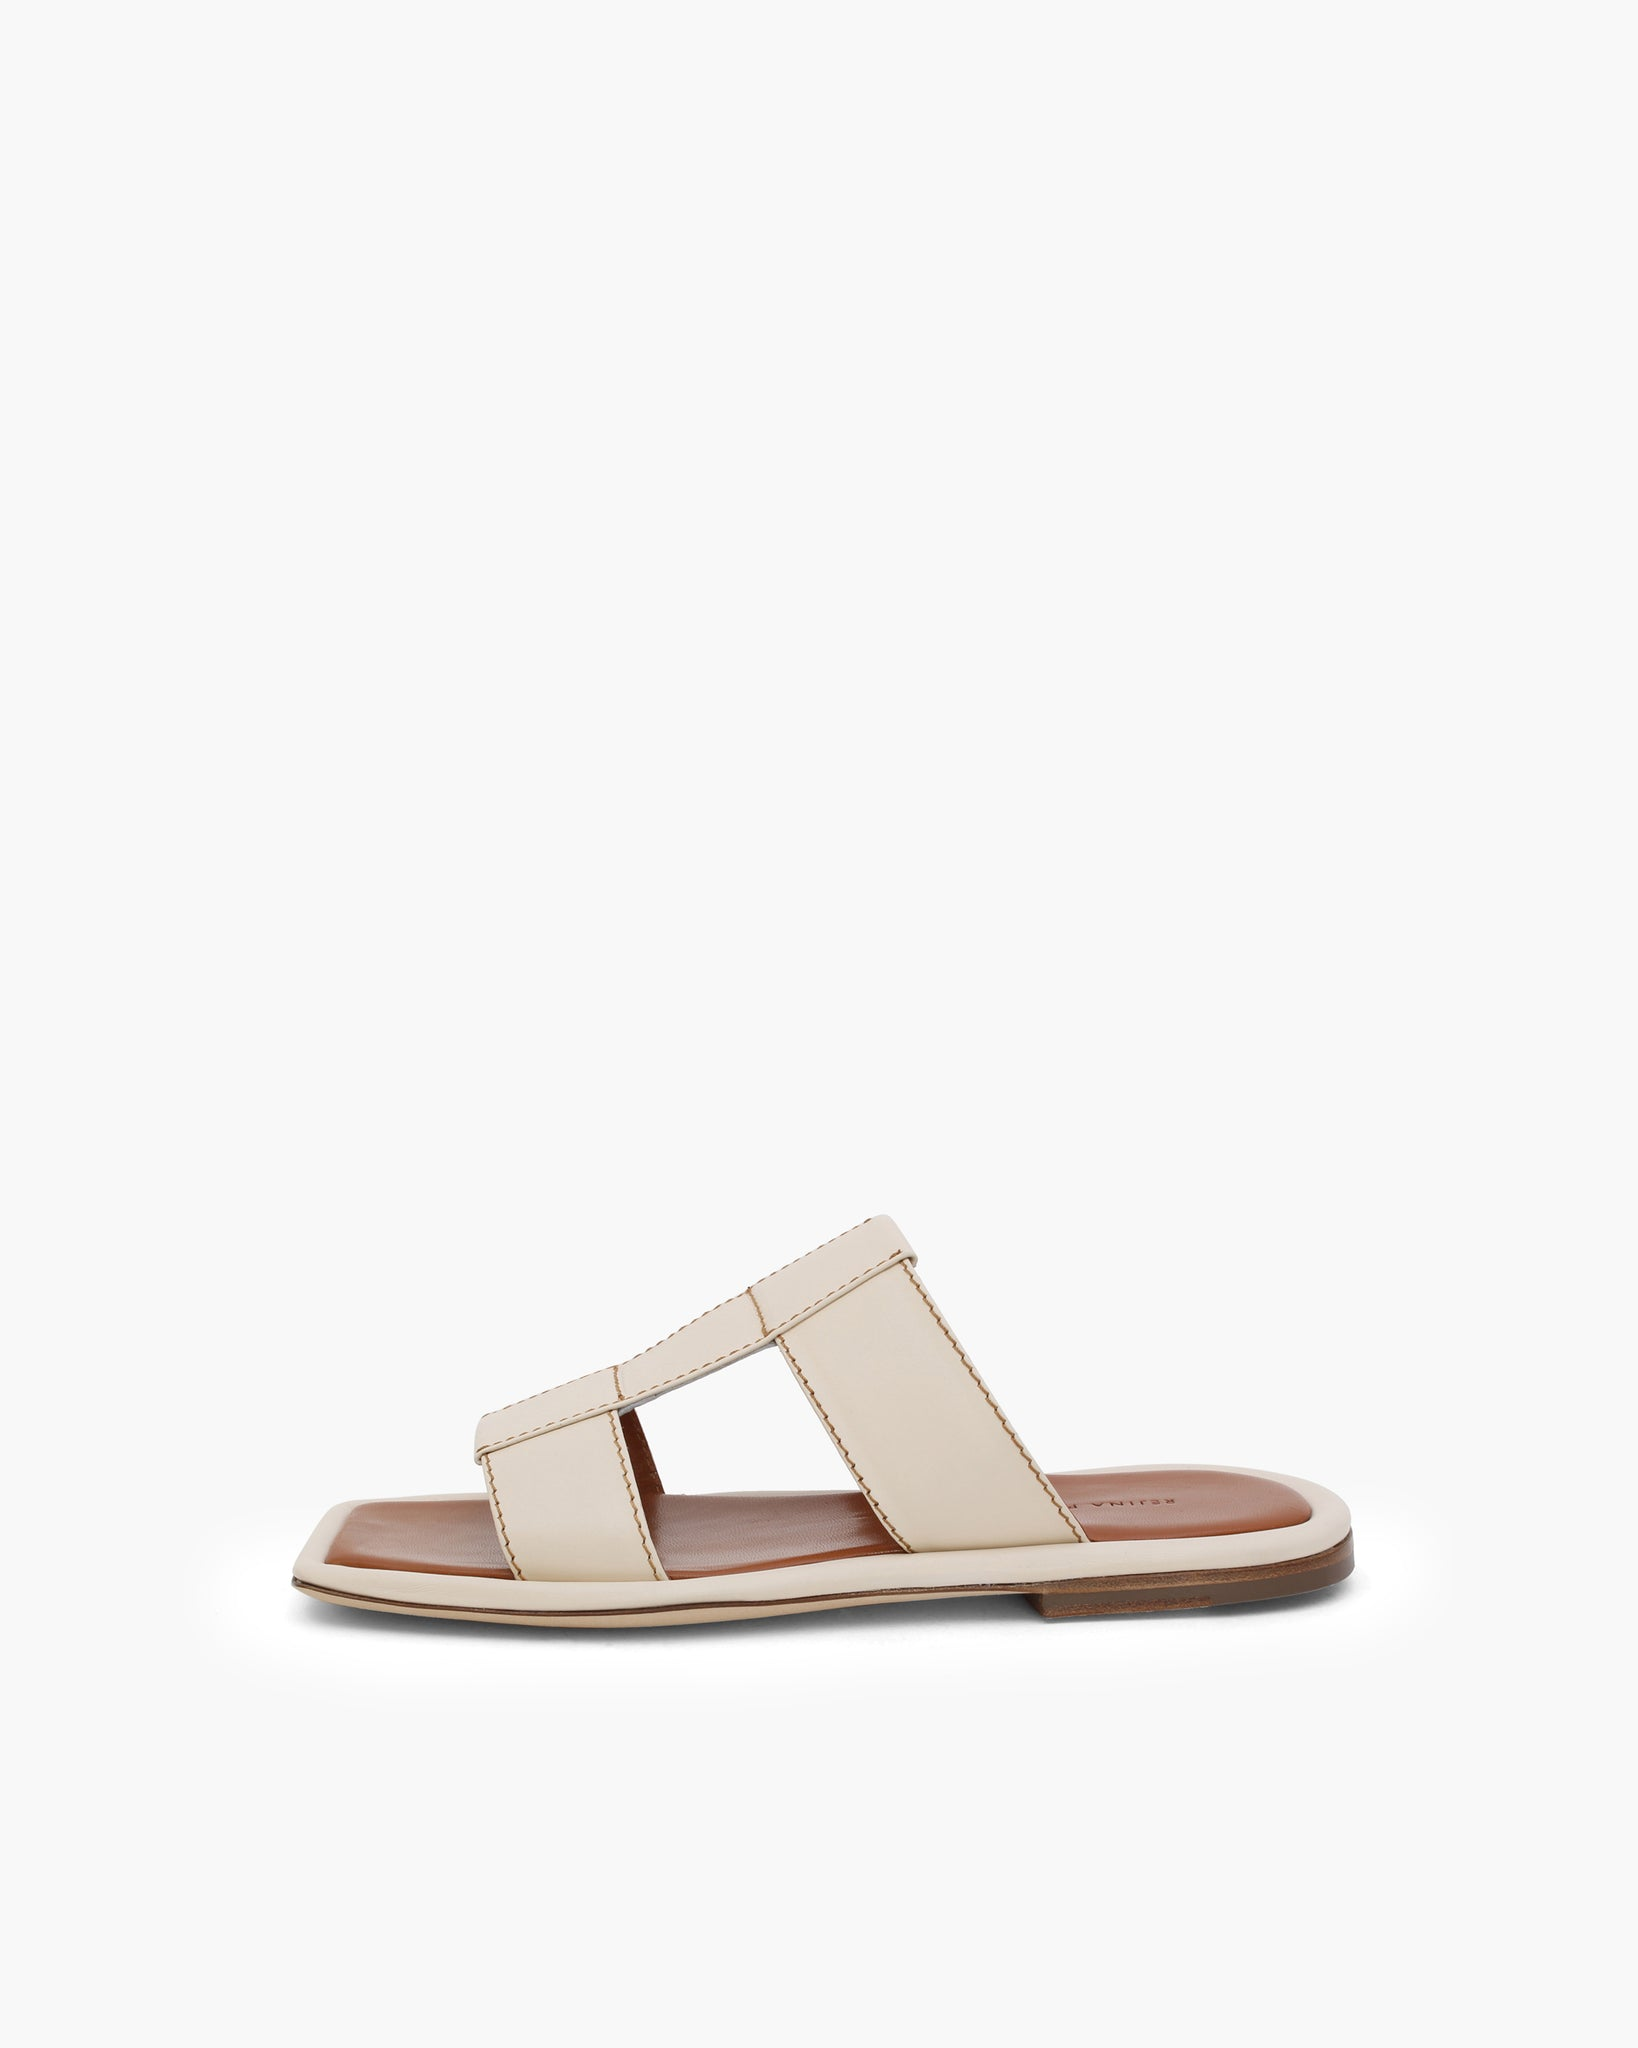 Rowan Sandals Leather Ivory